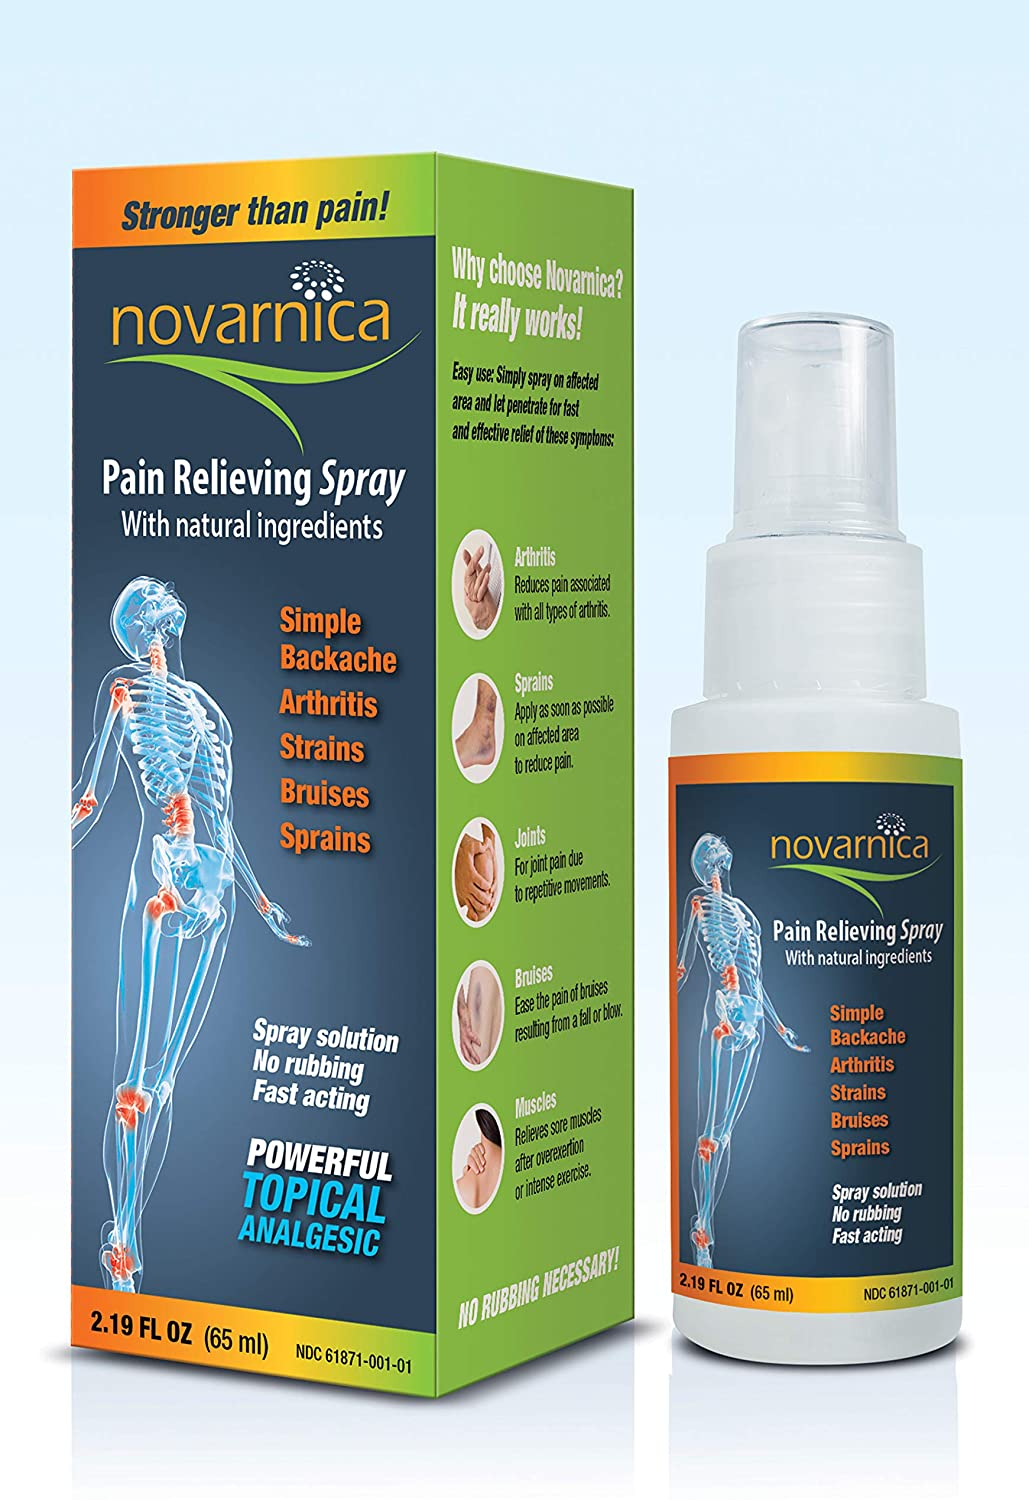 Novarnica pain reliever spray 2.19oz made with natural ingredients, Instant relief for arthritis, joint pain, osteoarthritis, sport injuries, back pain, muscle pain, sprains, strains and bruises